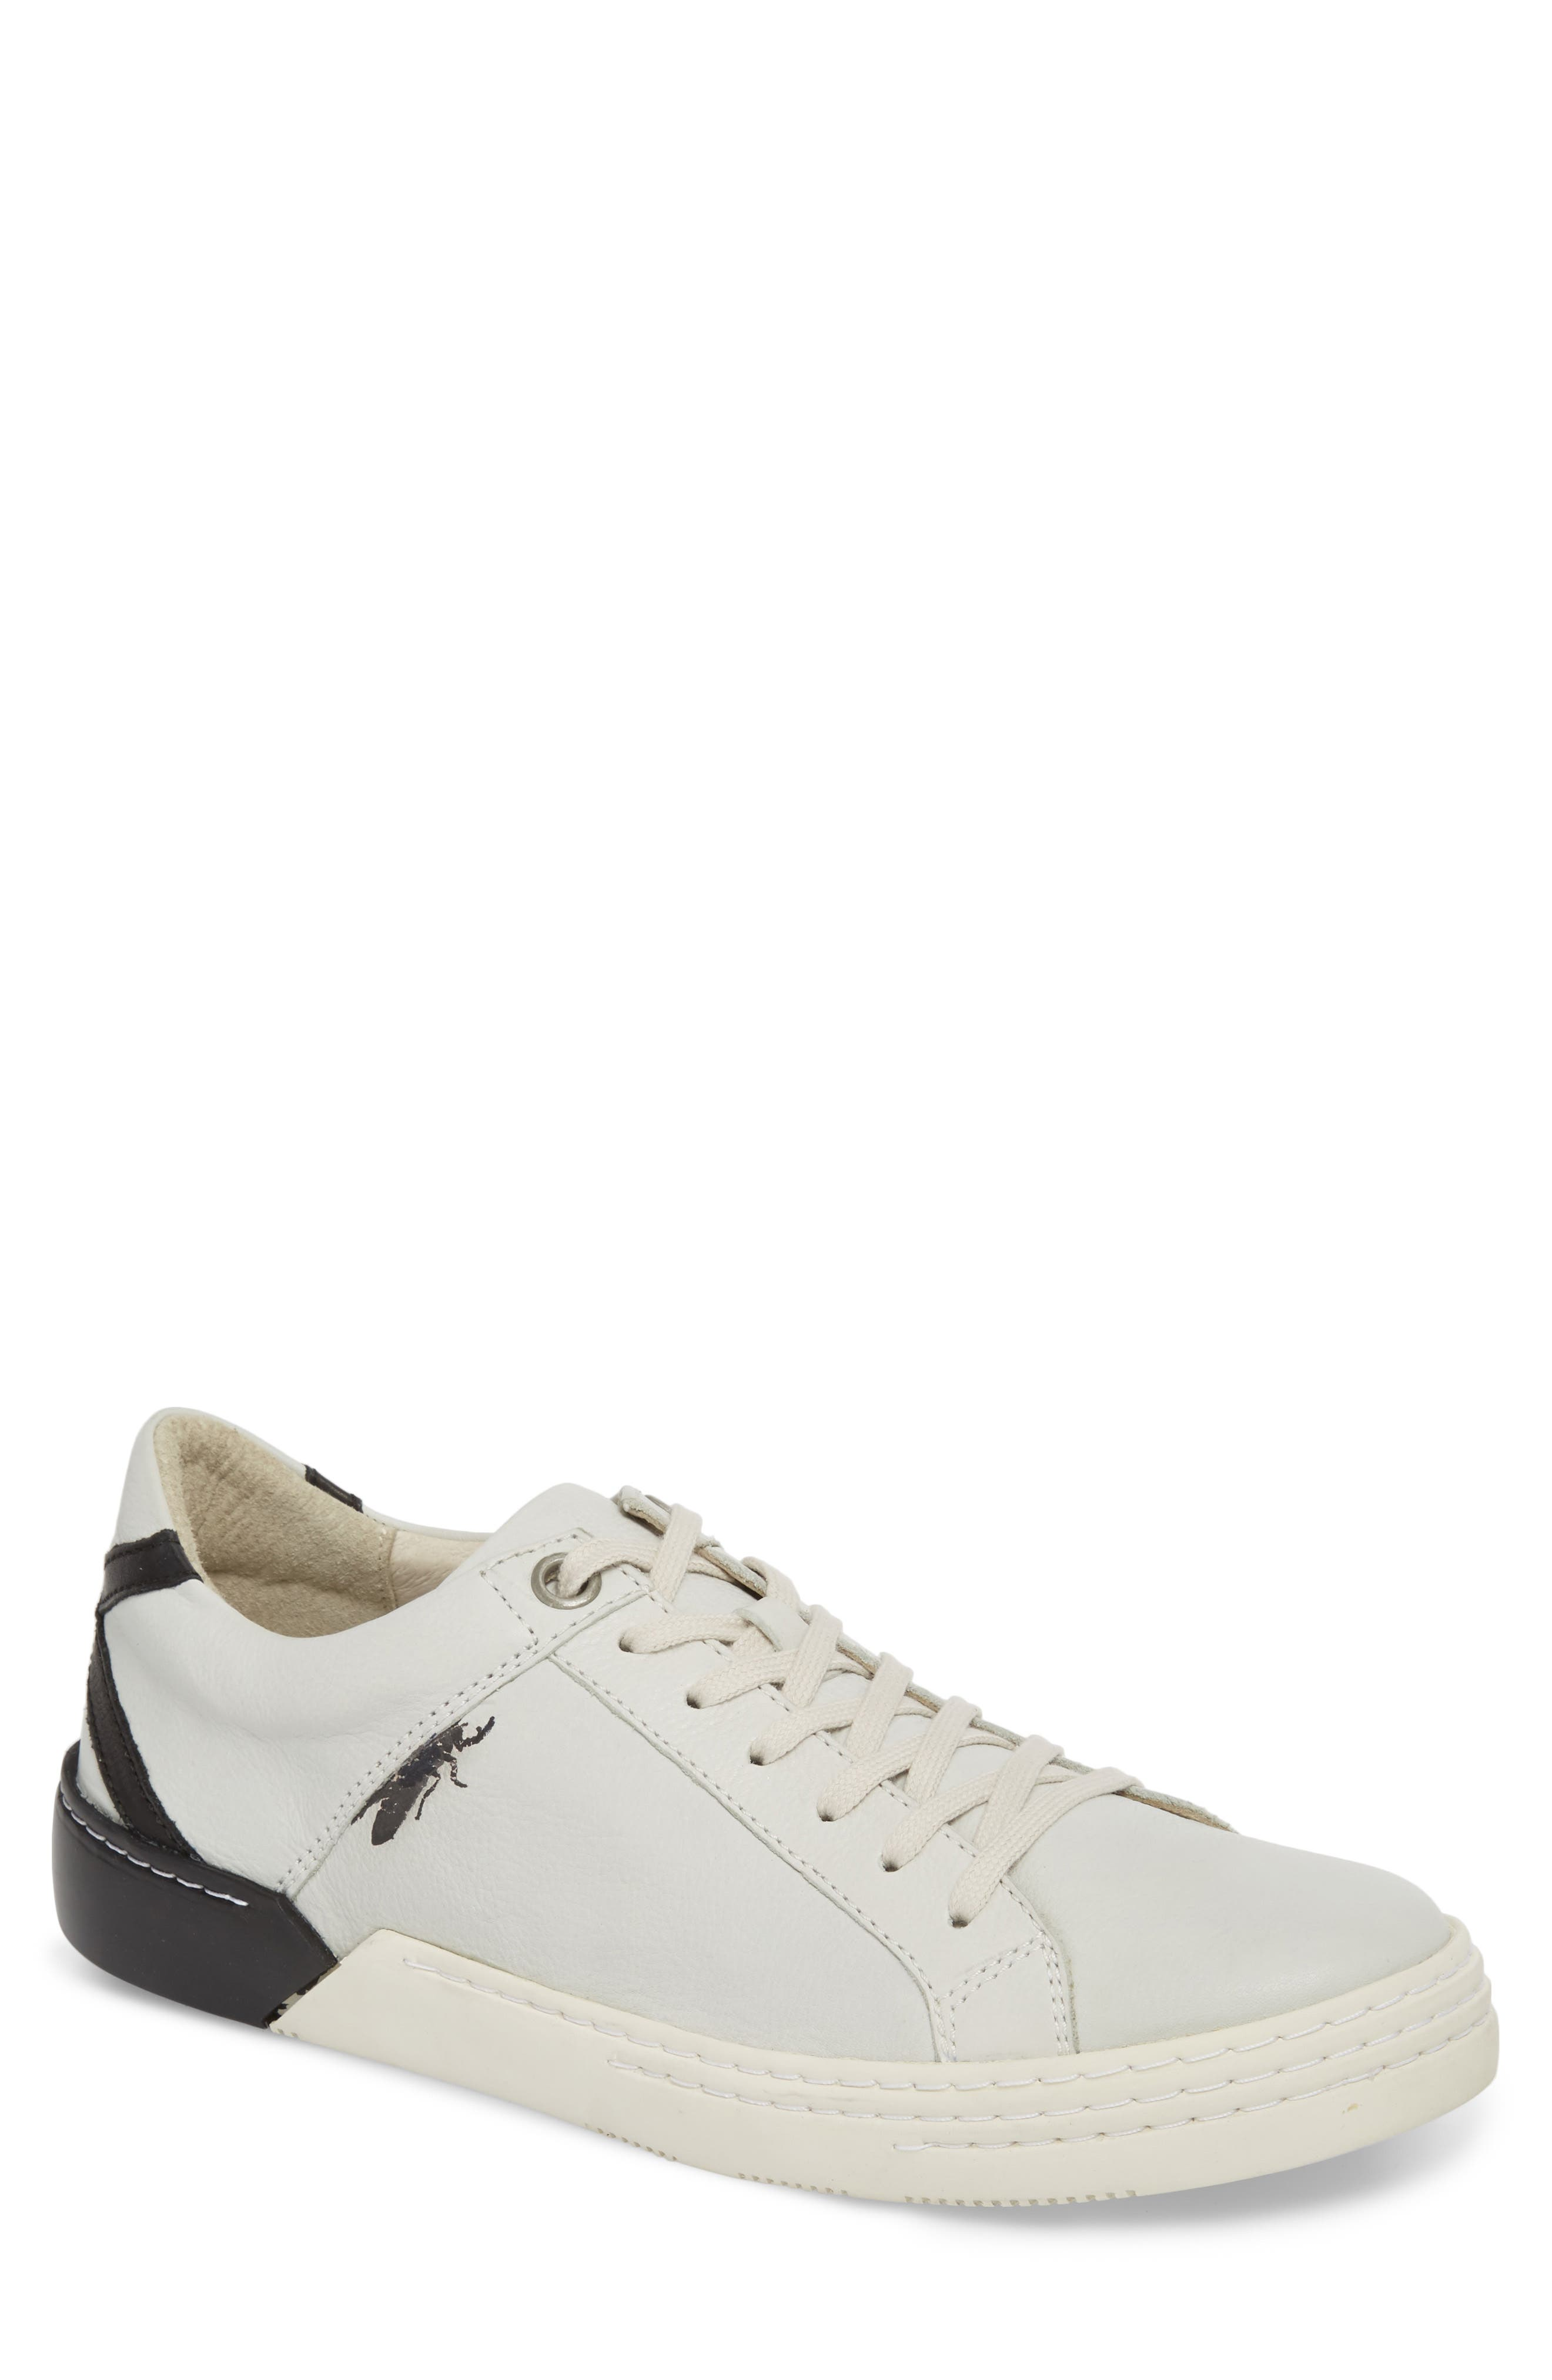 Sene Low Top Sneaker,                         Main,                         color, Off White Leather